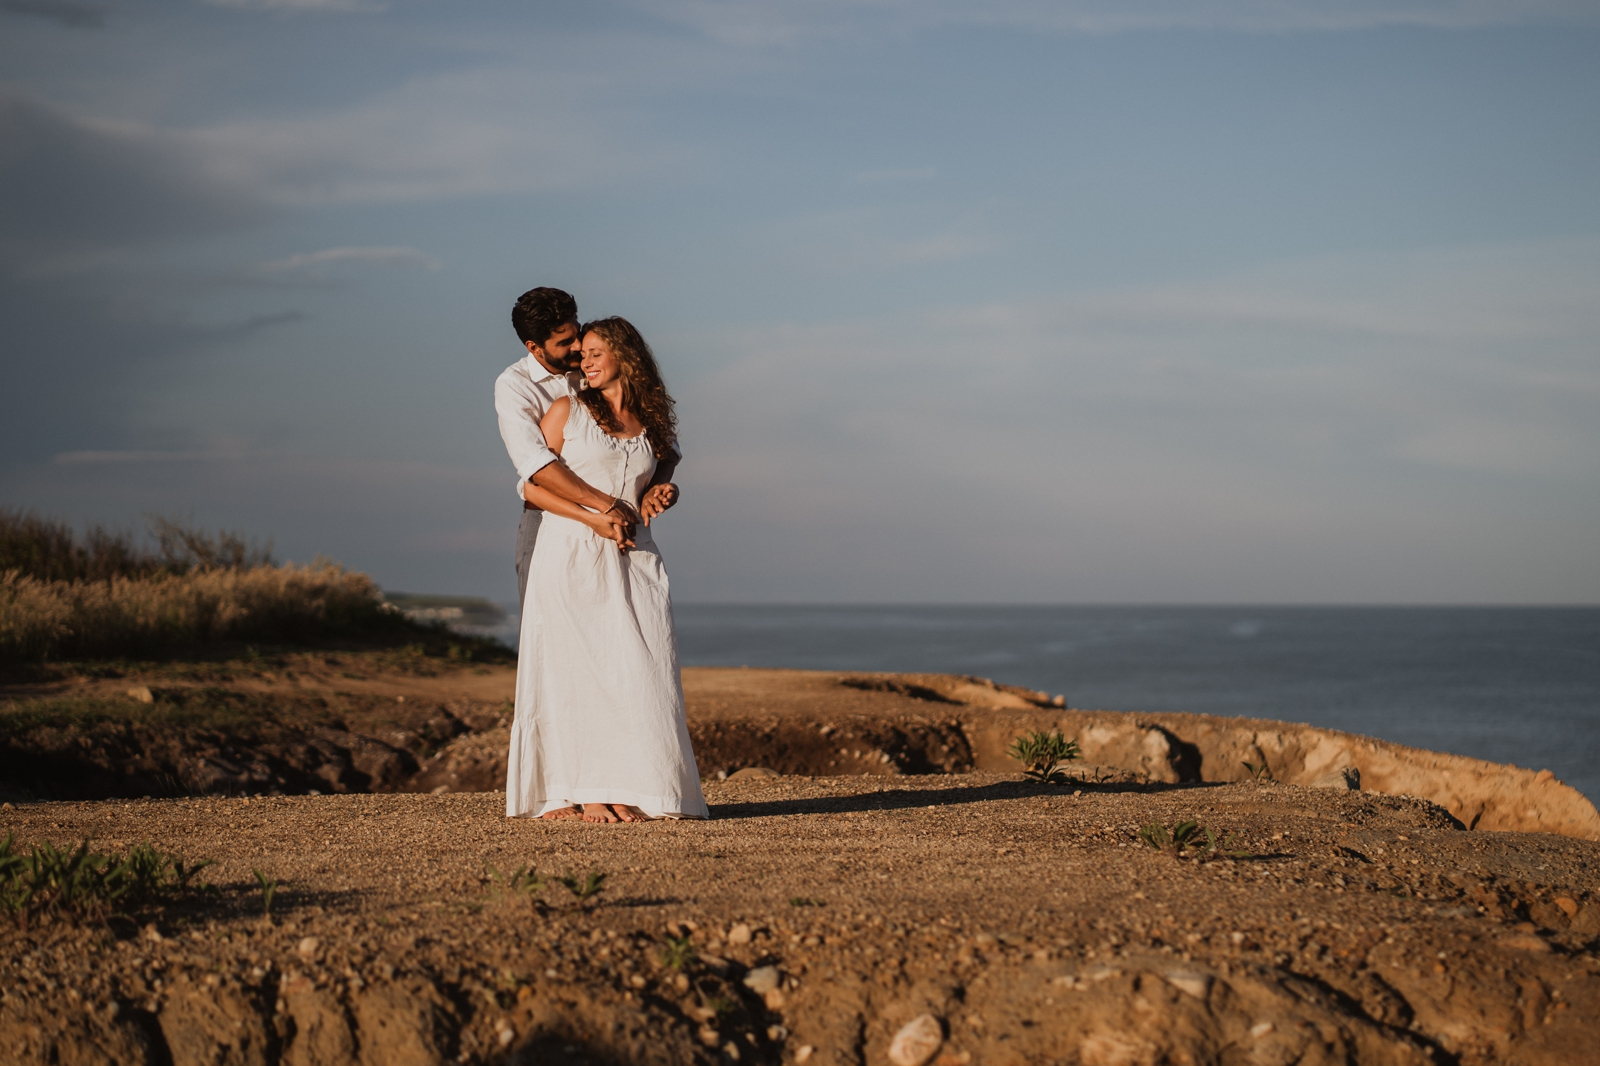 JJP_Nikki & Bud_Shadmoor_Montauk_NY_Cliff Engagement Session26.jpg_blog.jpg